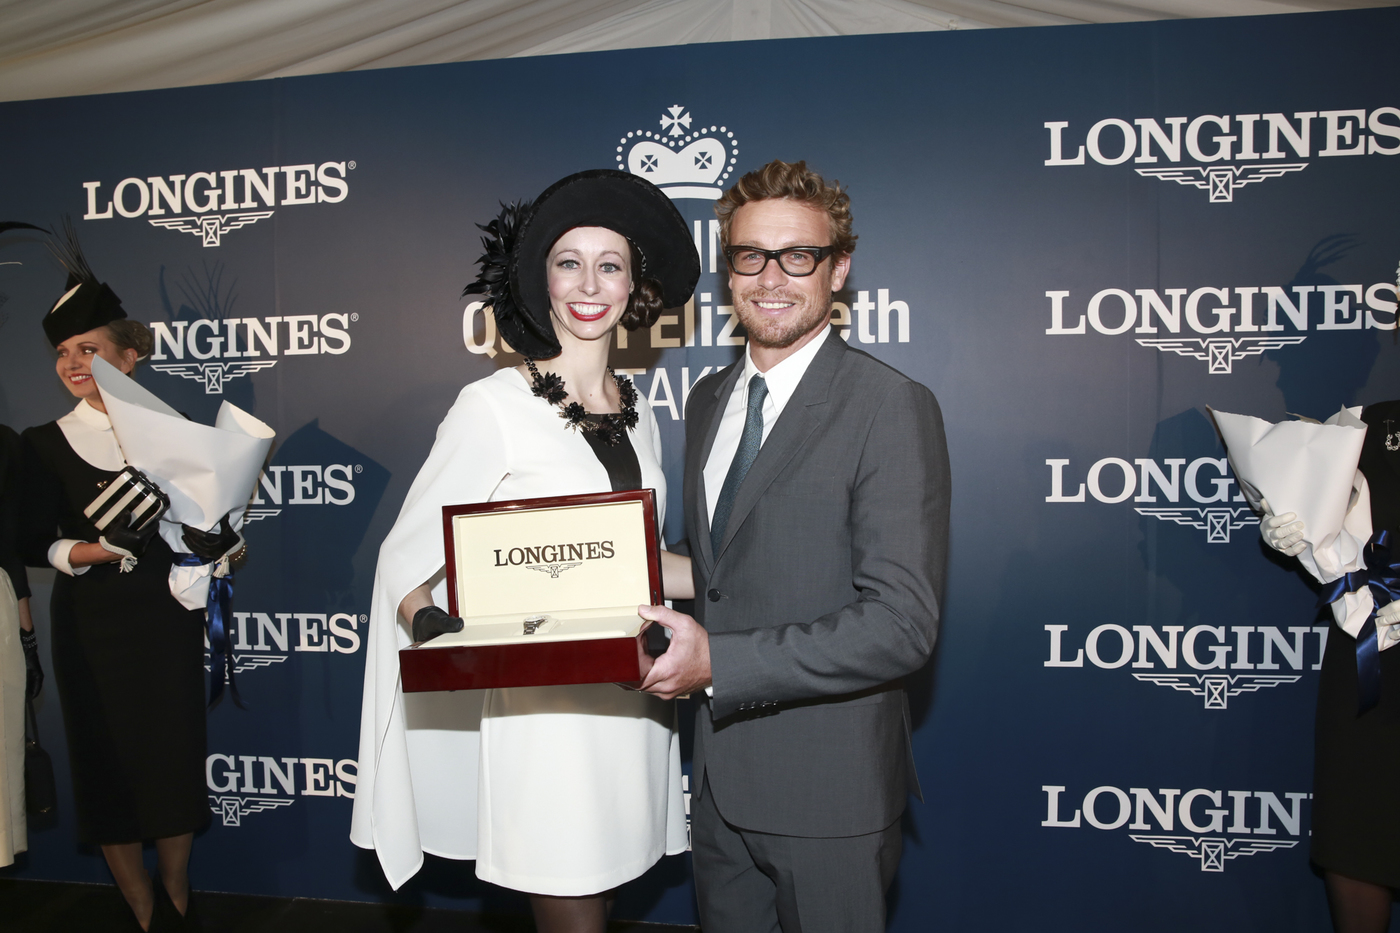 Longines Flat Racing Event: 2014 edition of the Longines Queen Elizabeth Stakes Raceday with the presence of Simon Baker 6